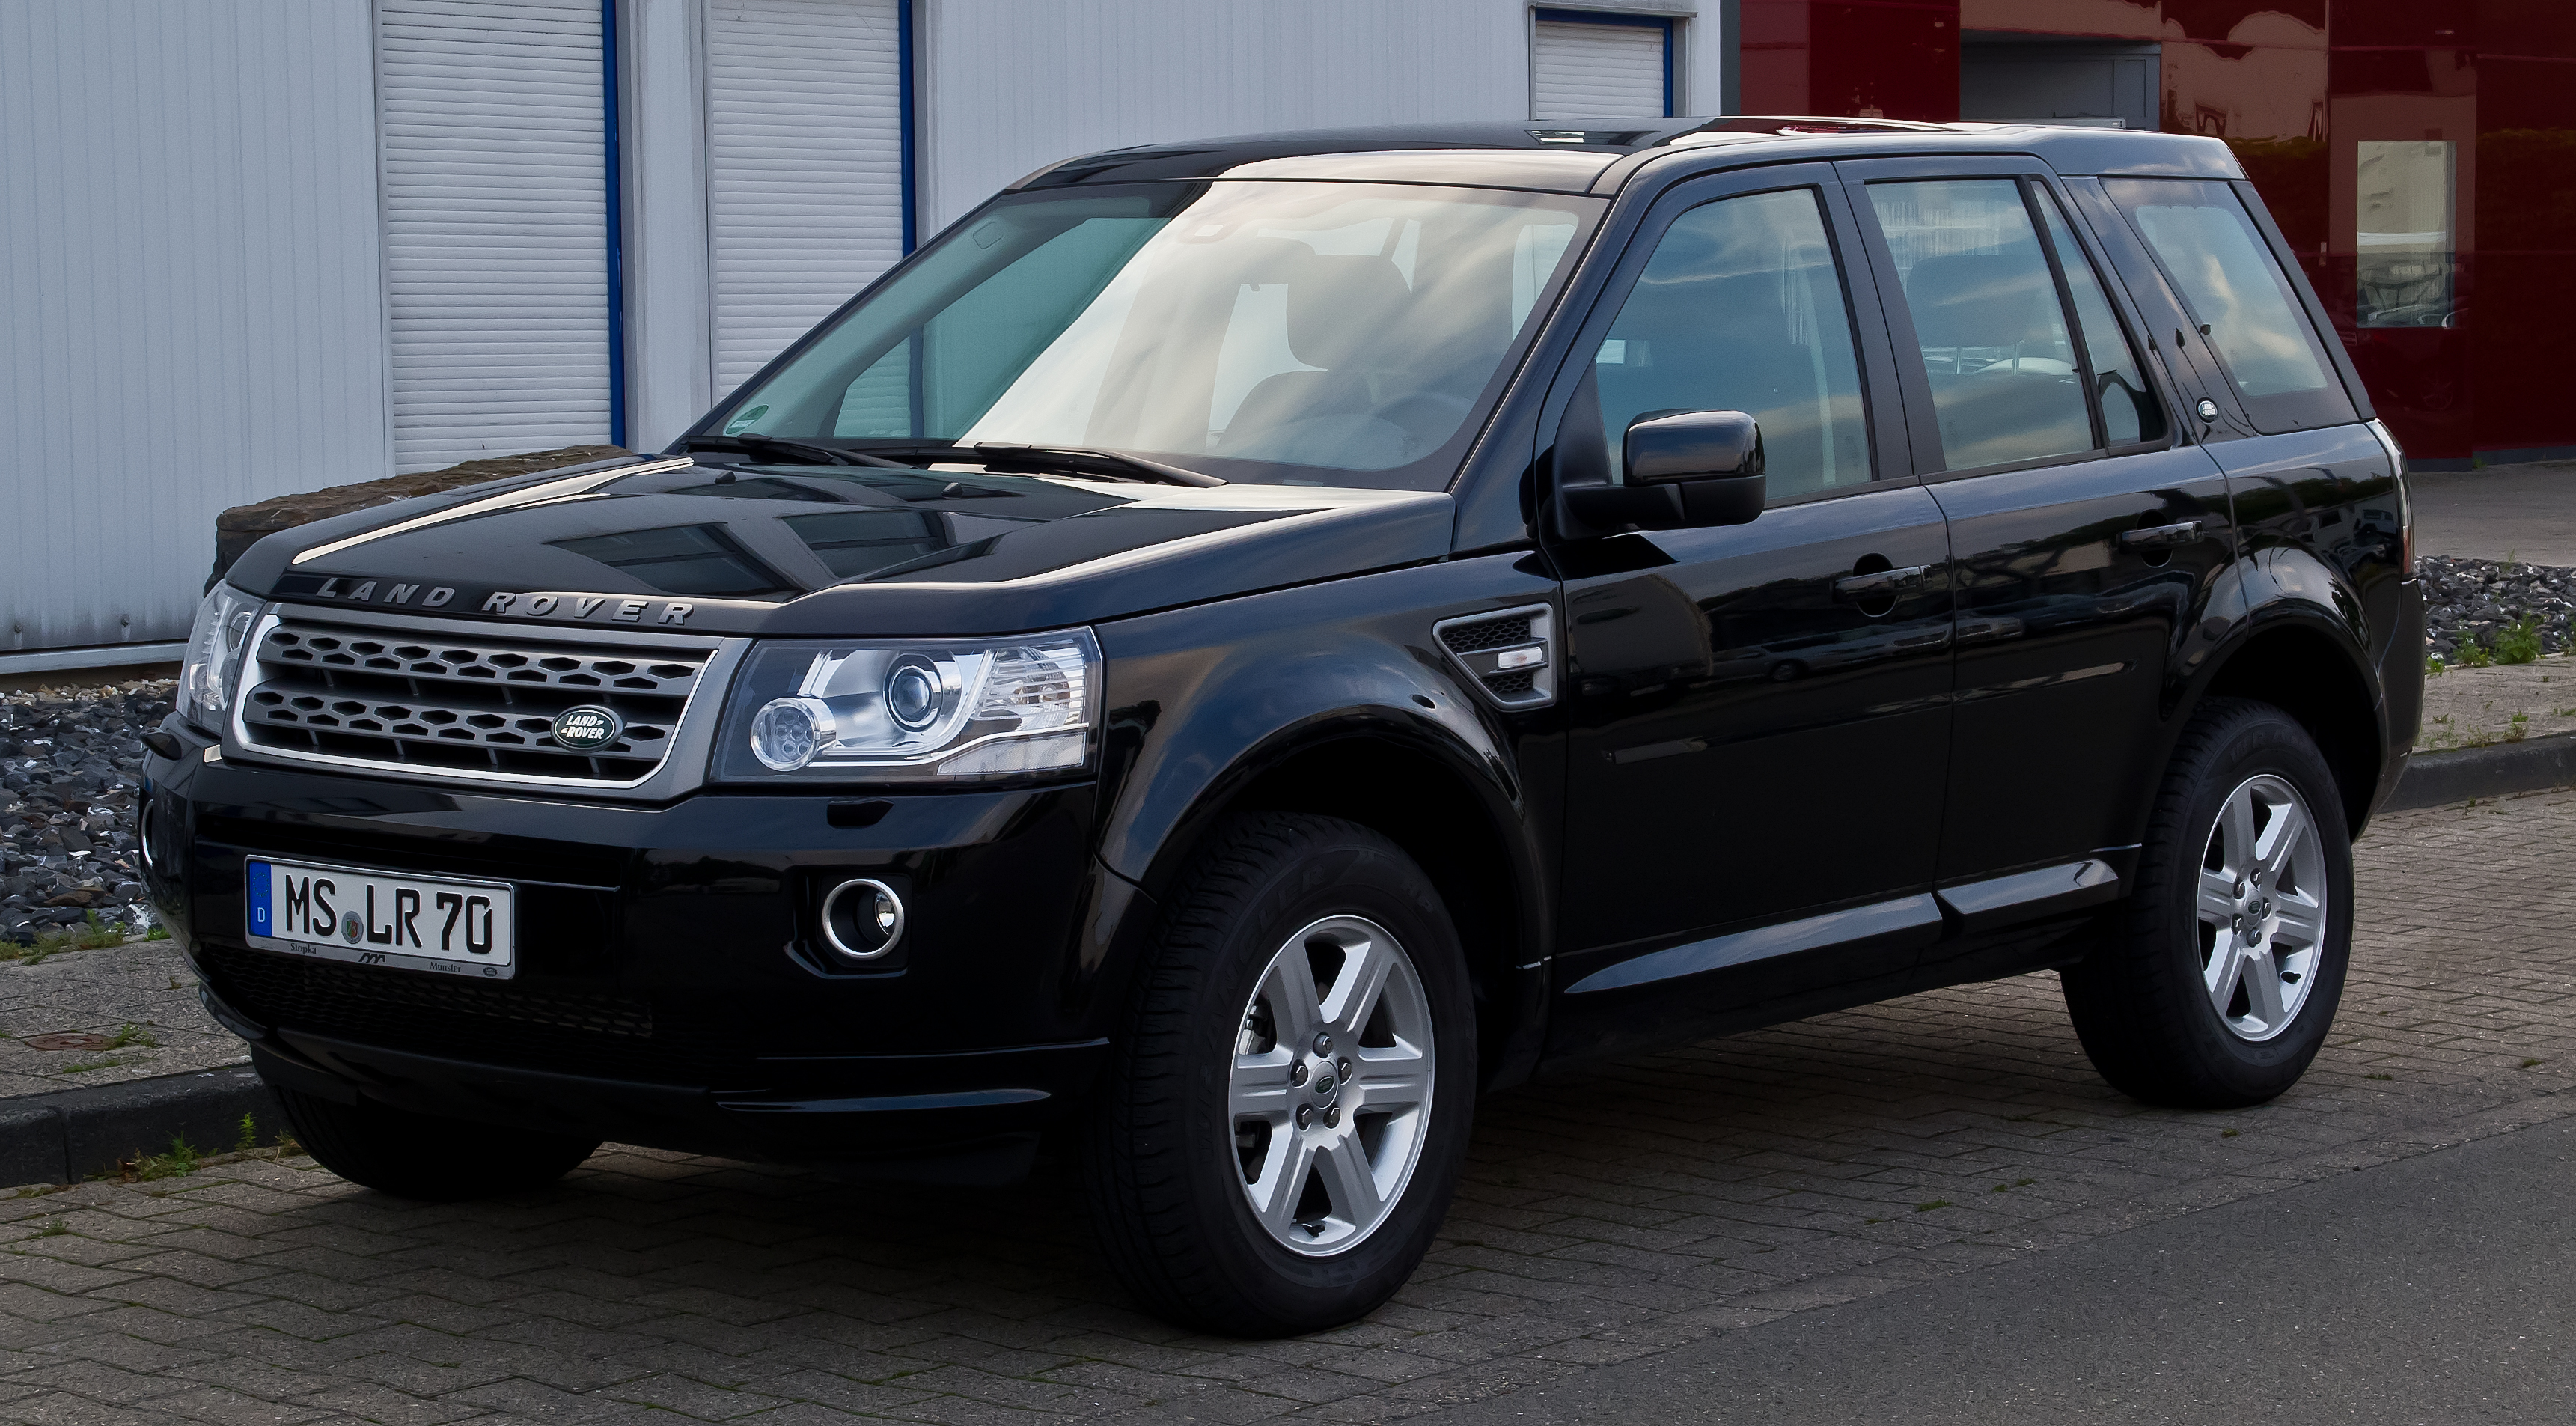 land rover freelander wikiwand. Black Bedroom Furniture Sets. Home Design Ideas